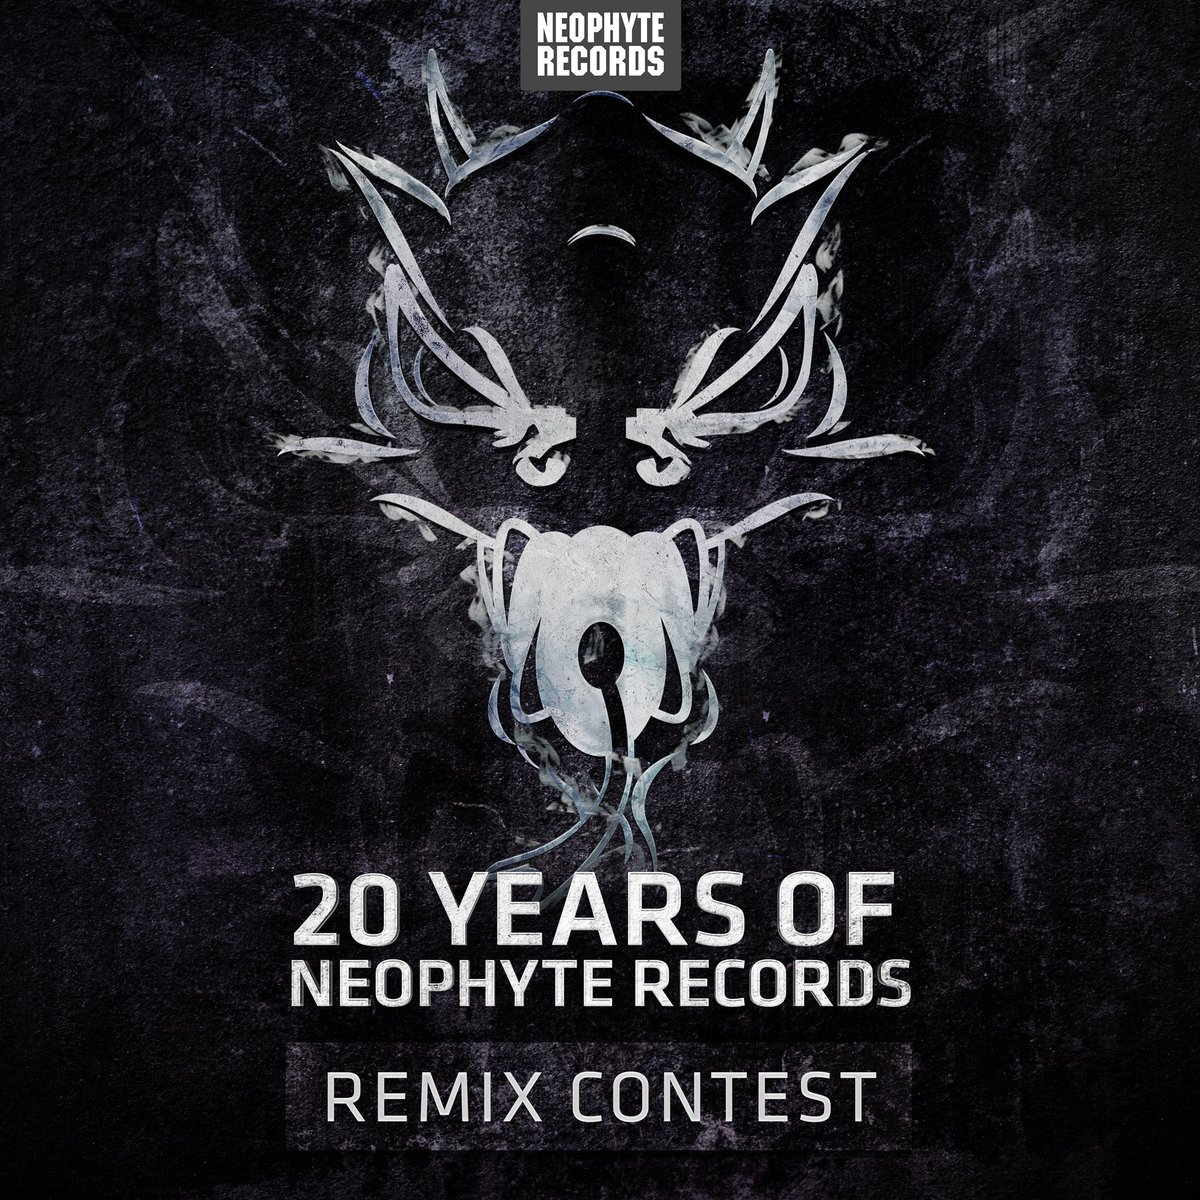 NEOPHYTE RECORDS REMIX CONTEST